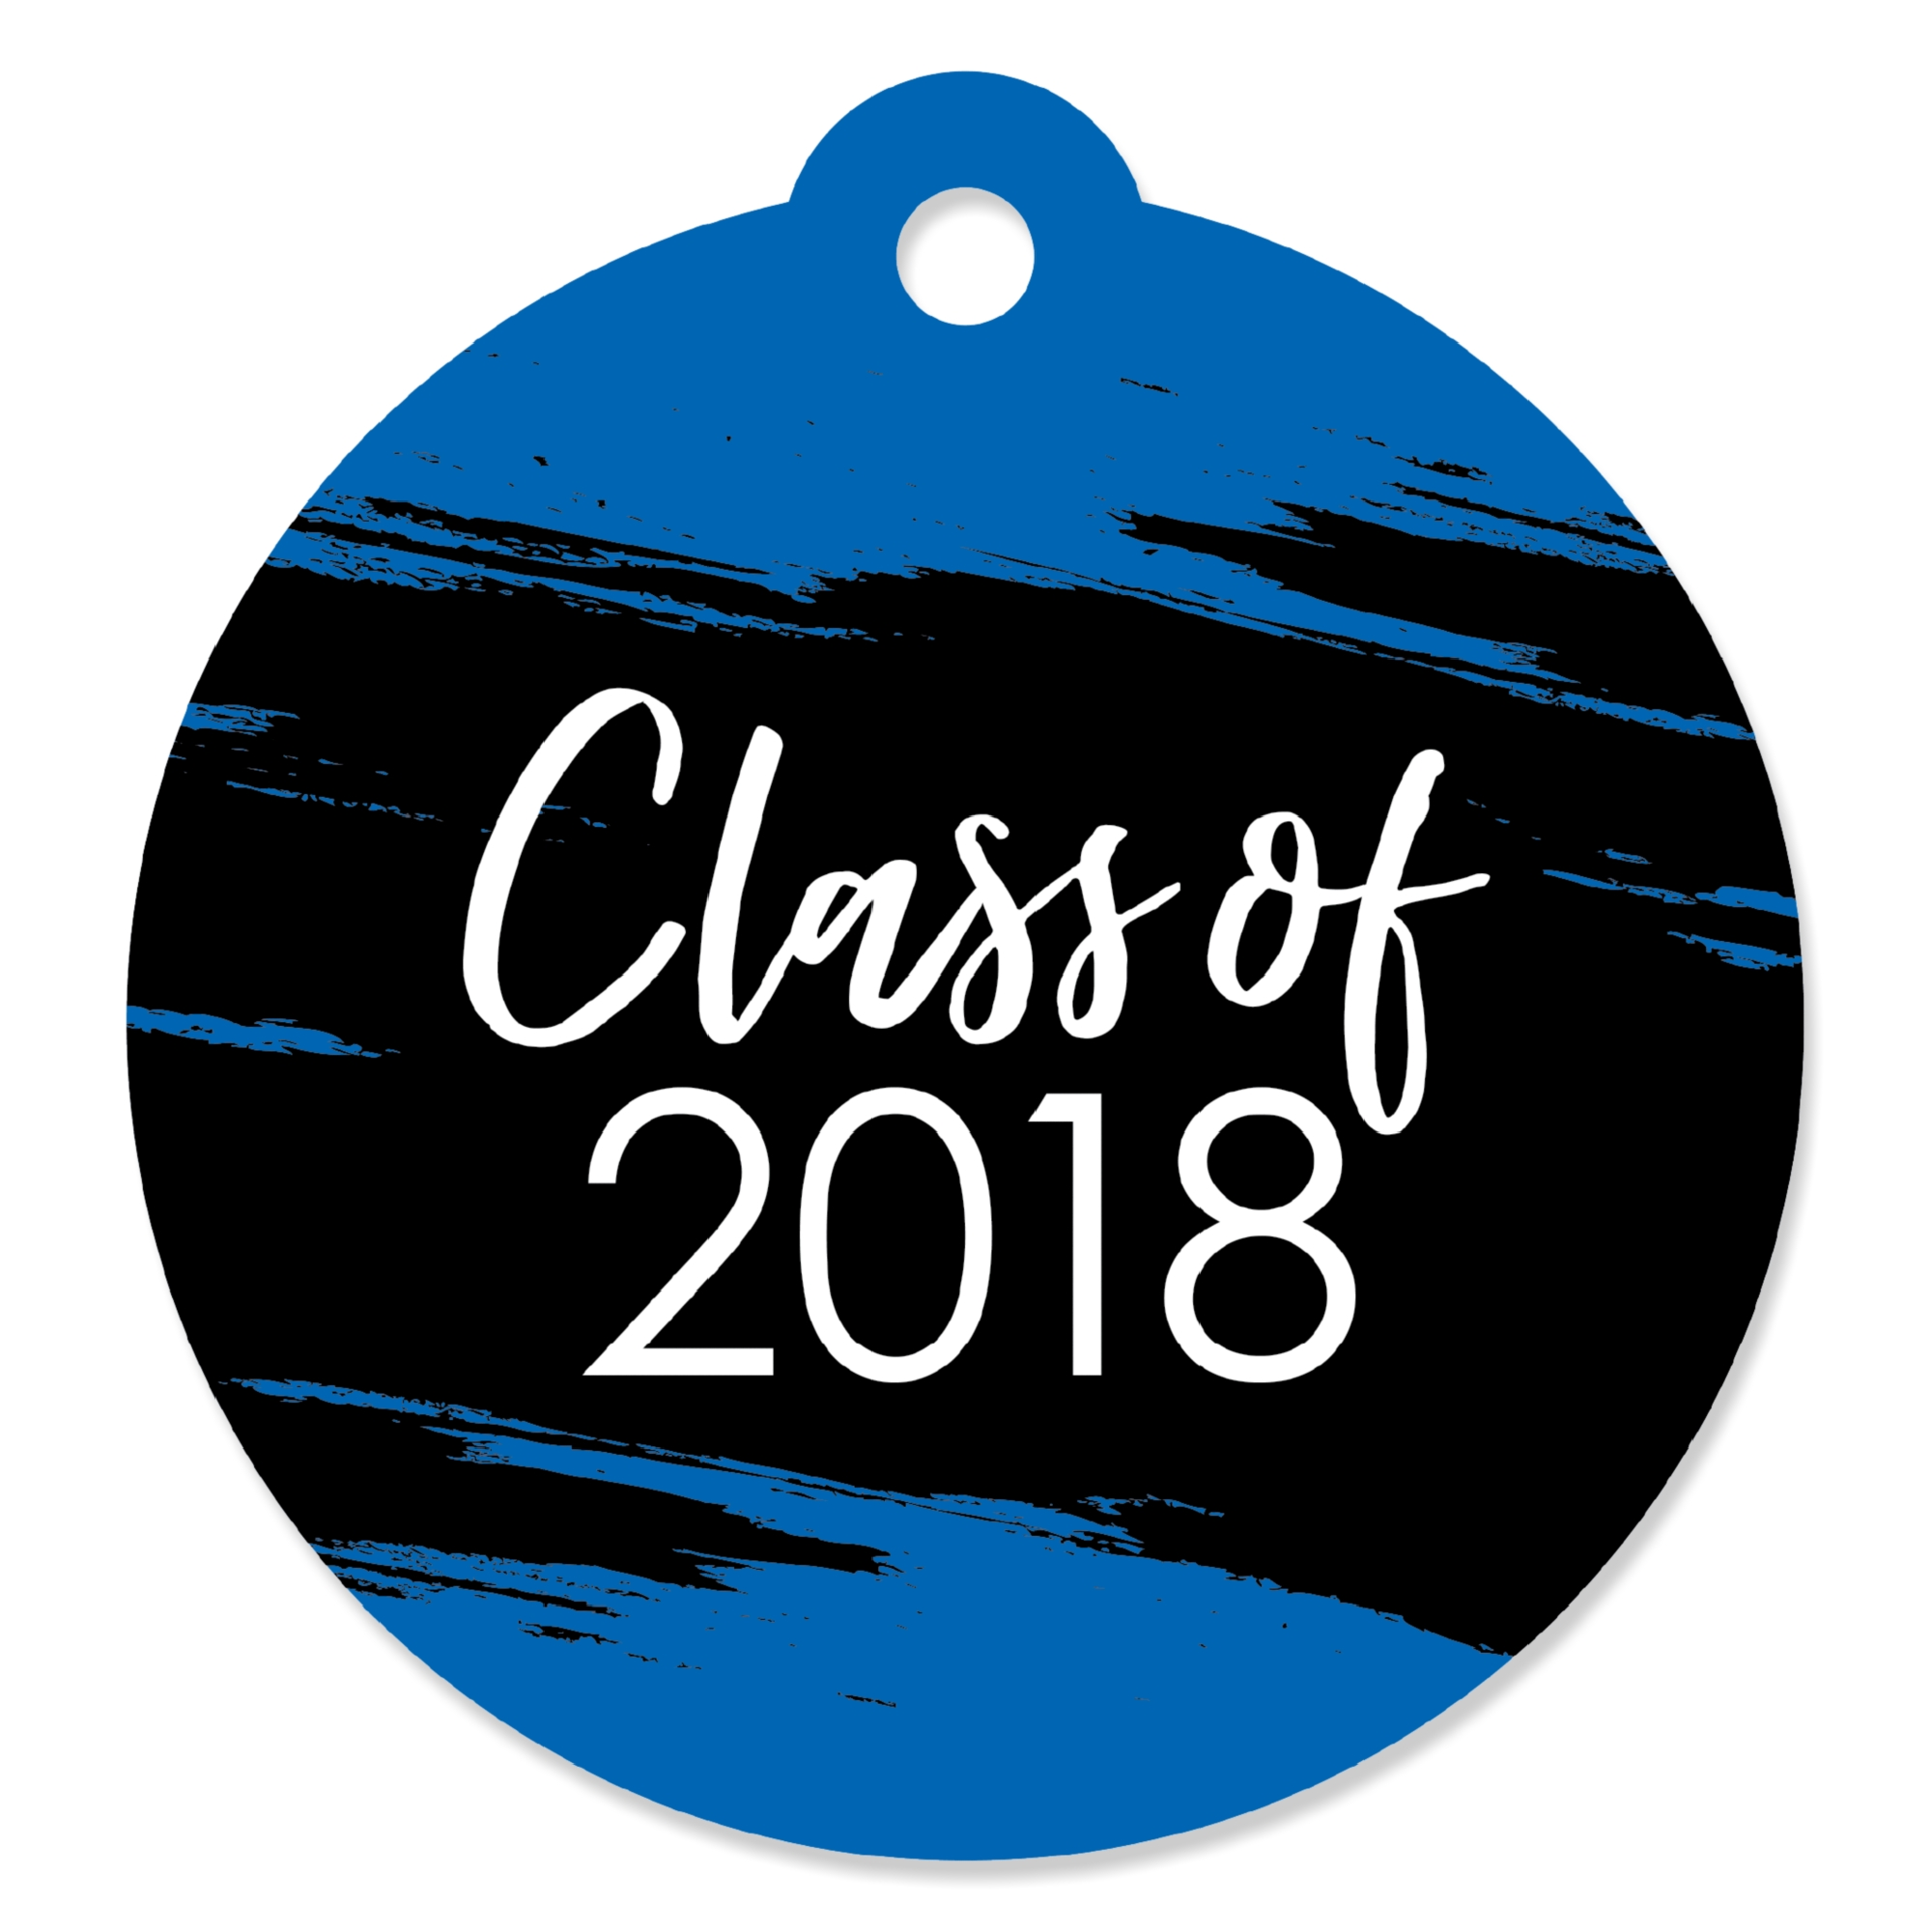 Blue Grad - Best is Yet to Come - Royal Blue 2019 Graduation Party Favor Gift Tags (Set of 20)